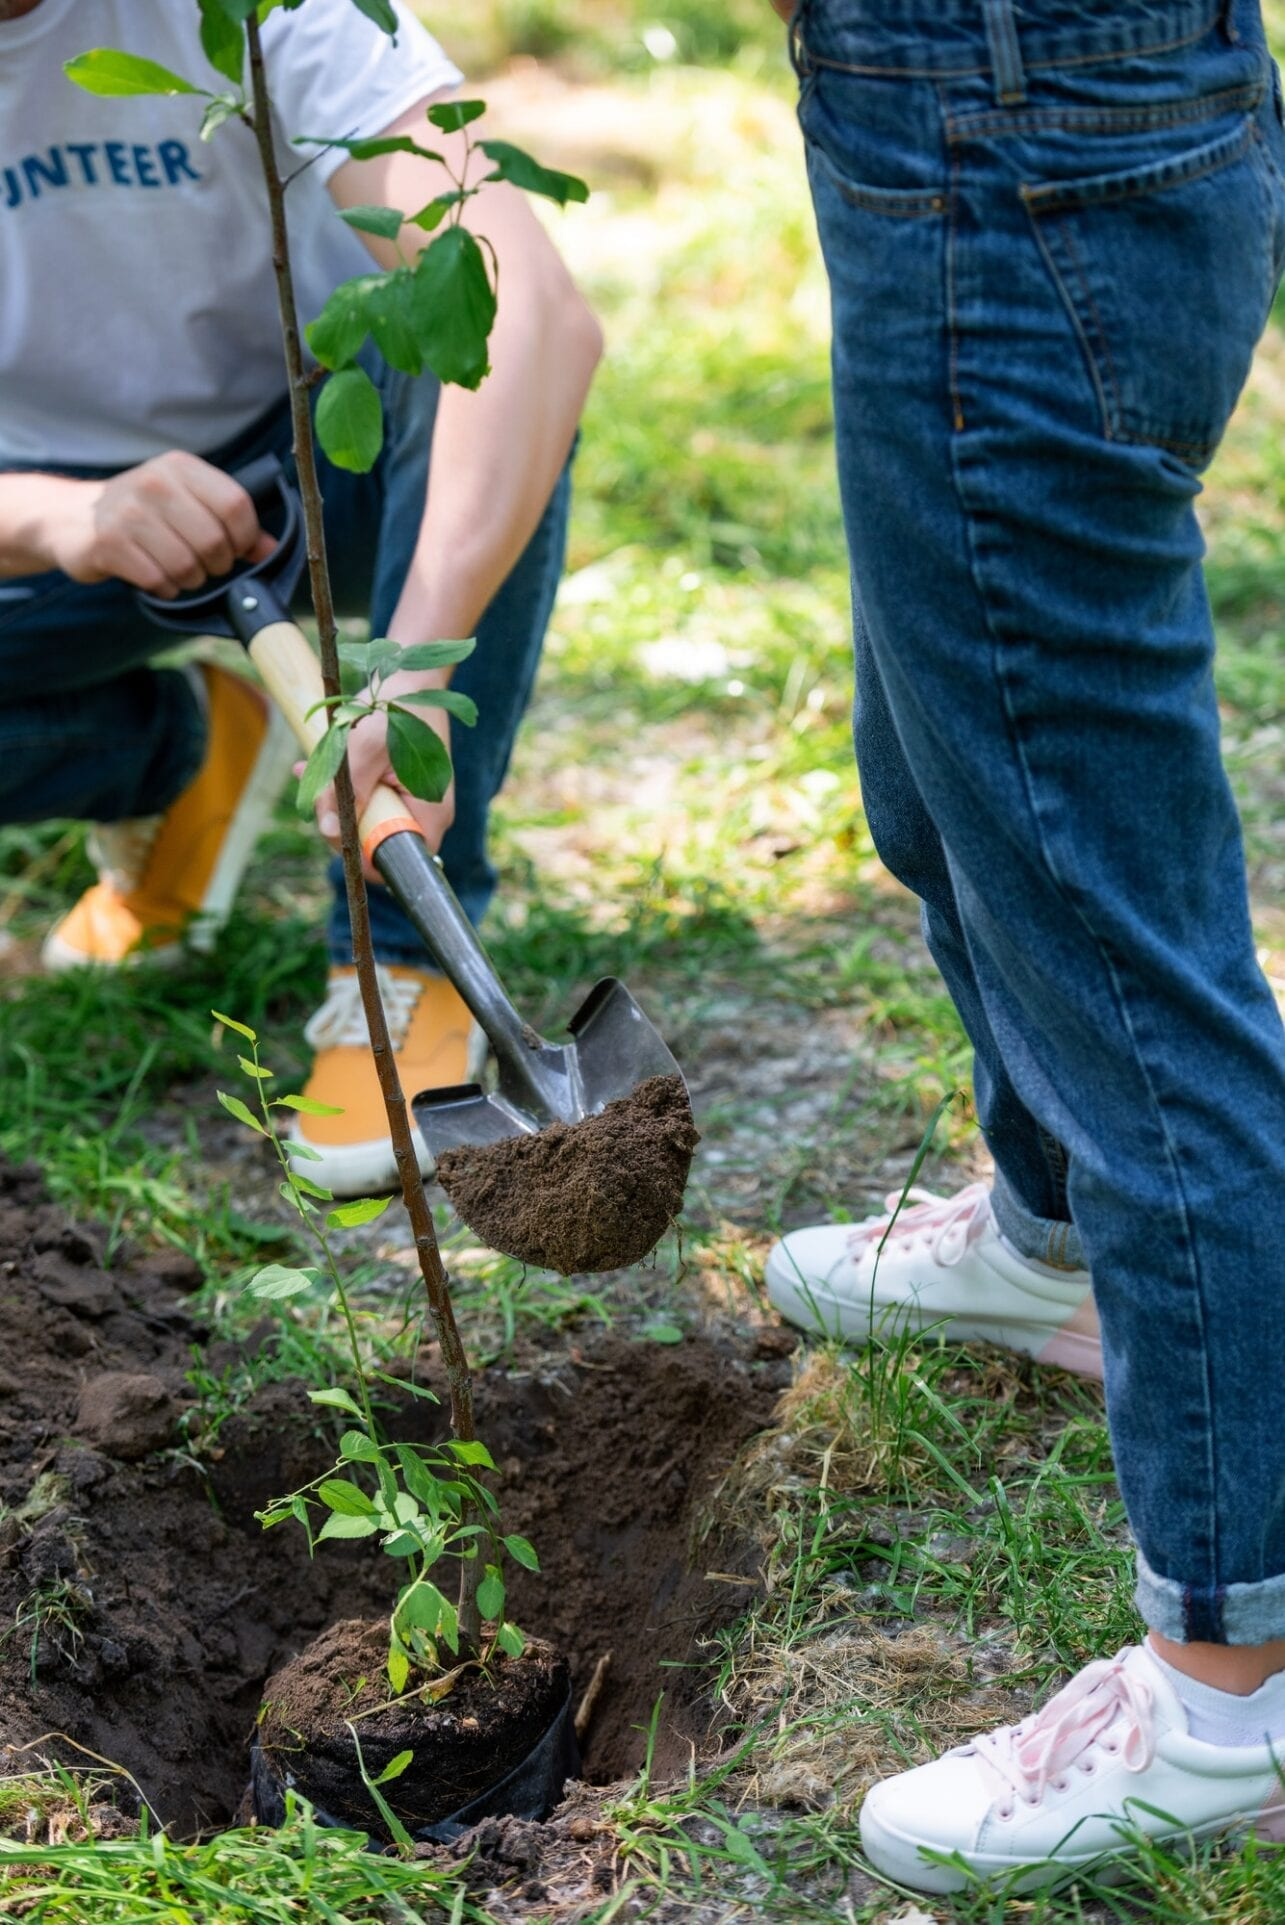 cropped-view-of-couple-planting-tree-with-shovel.jpg